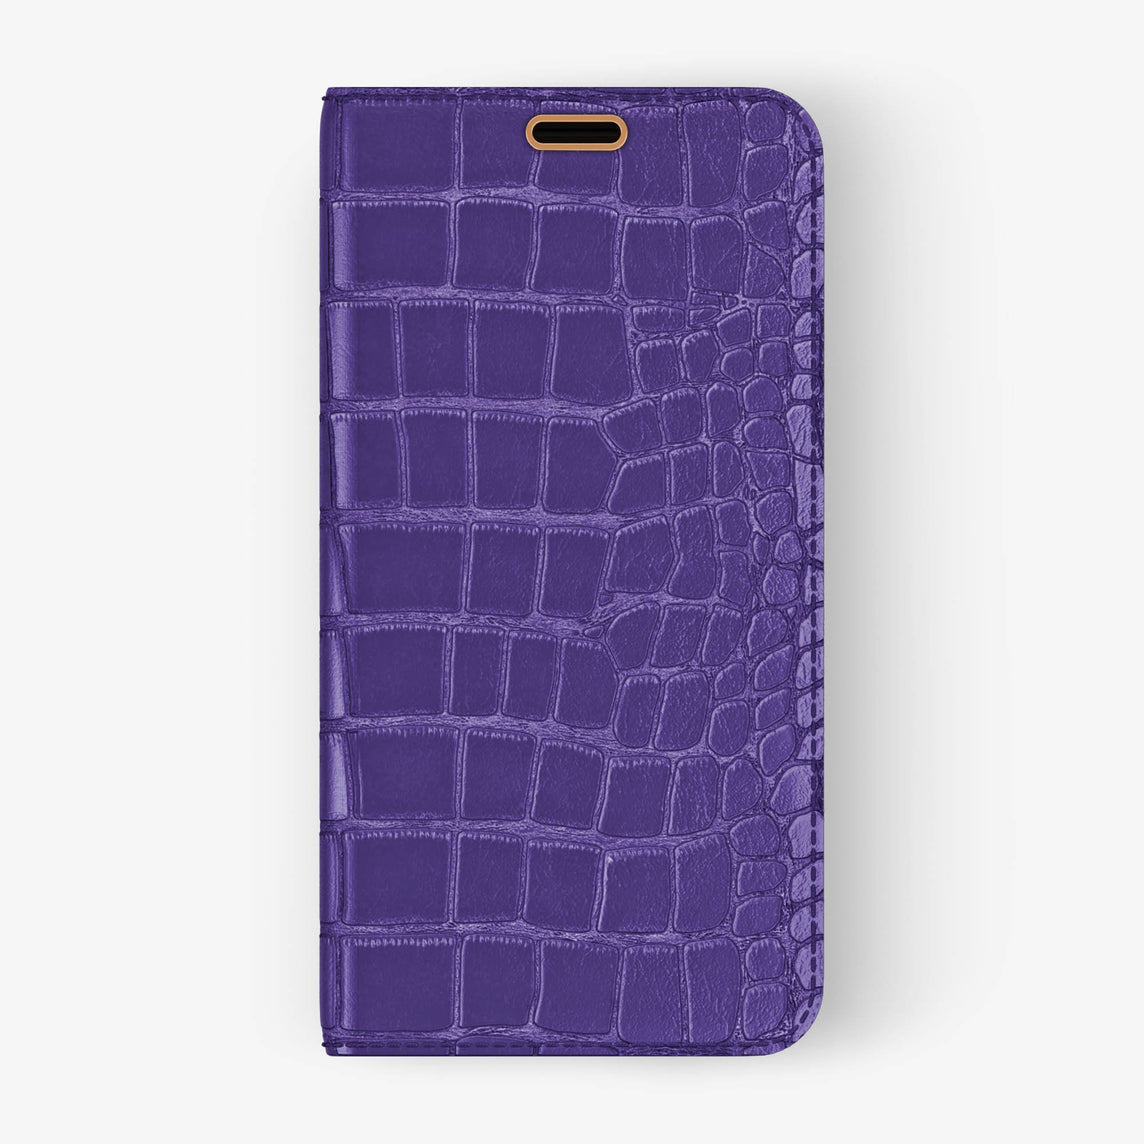 Alligator Folio Case iPhone X/Xs | Purple - Rose Gold without-personalization